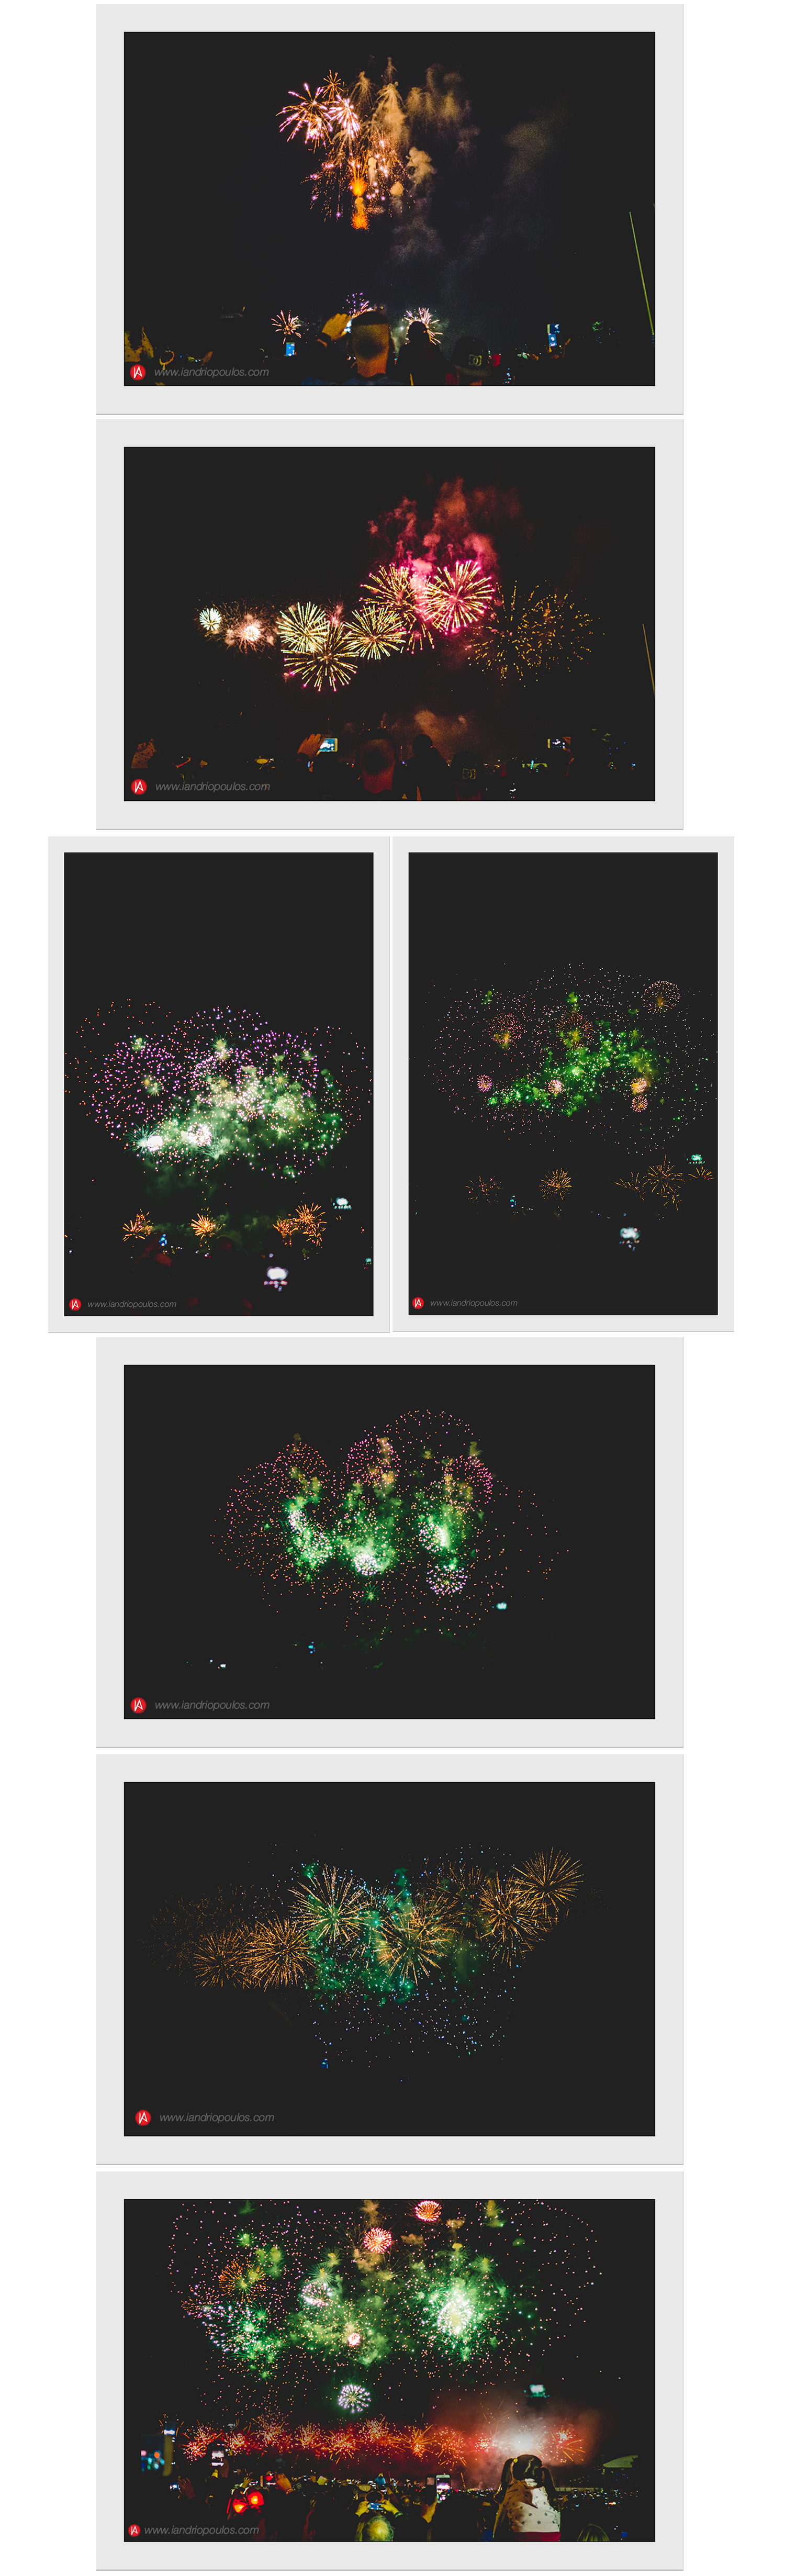 IOANNIS ANDRIOPOULOS PHOTOGRAPHY PATRAS CARNIVAL FIREWORKS 3